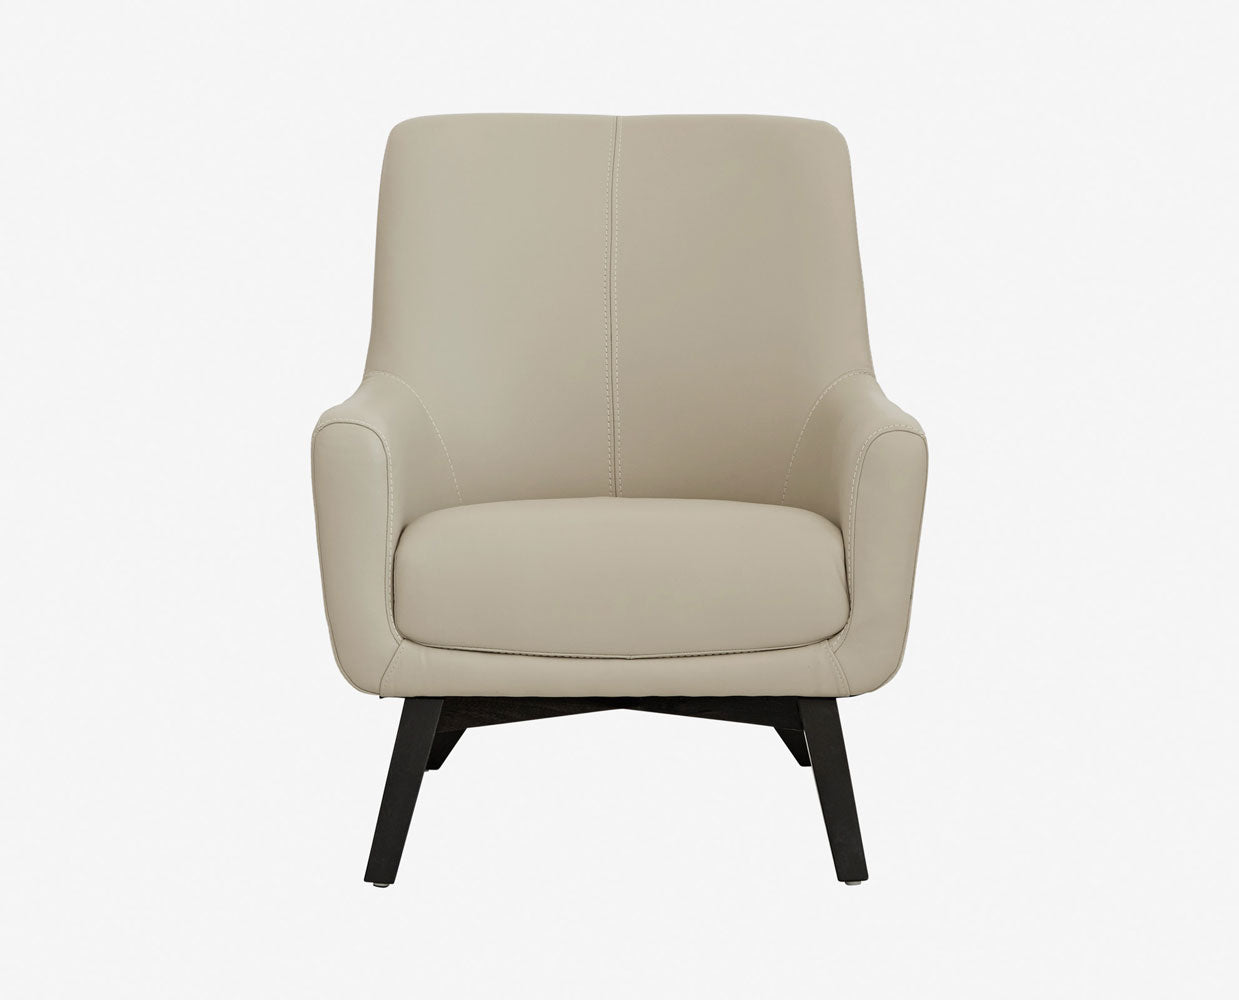 Exceptional Gisella Leather Chair